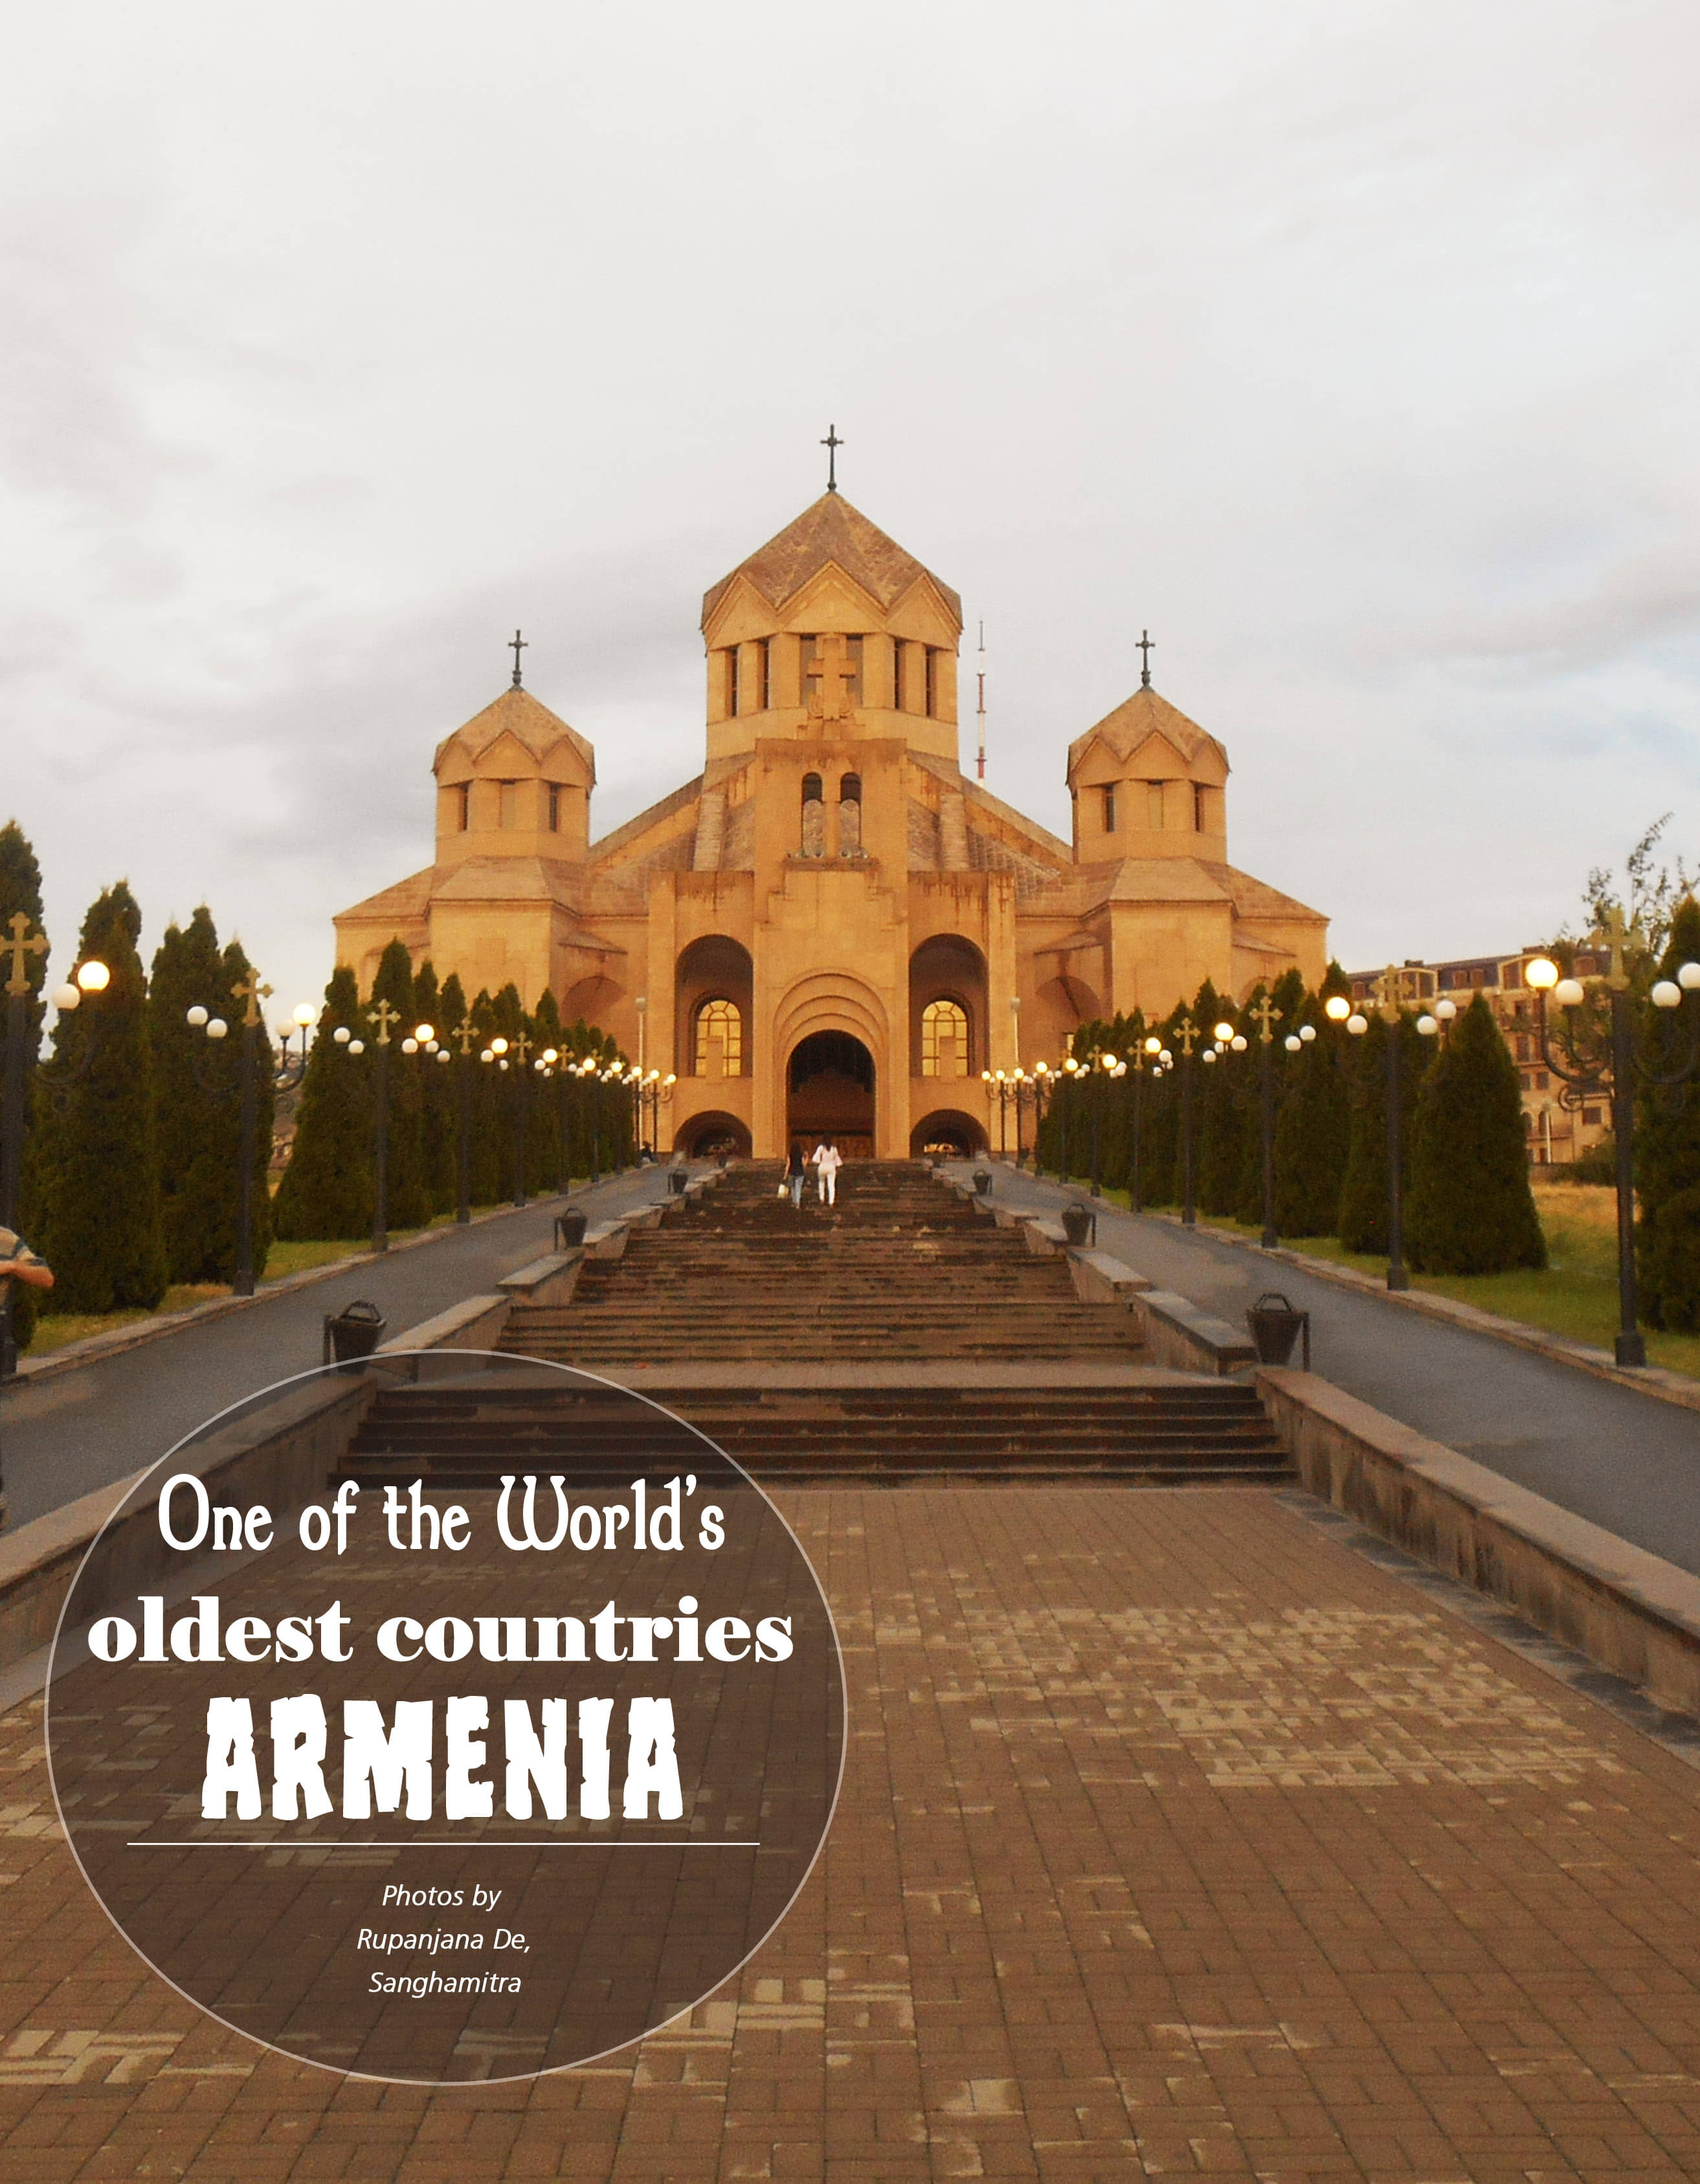 One Of The World's Oldest Countries Armenia